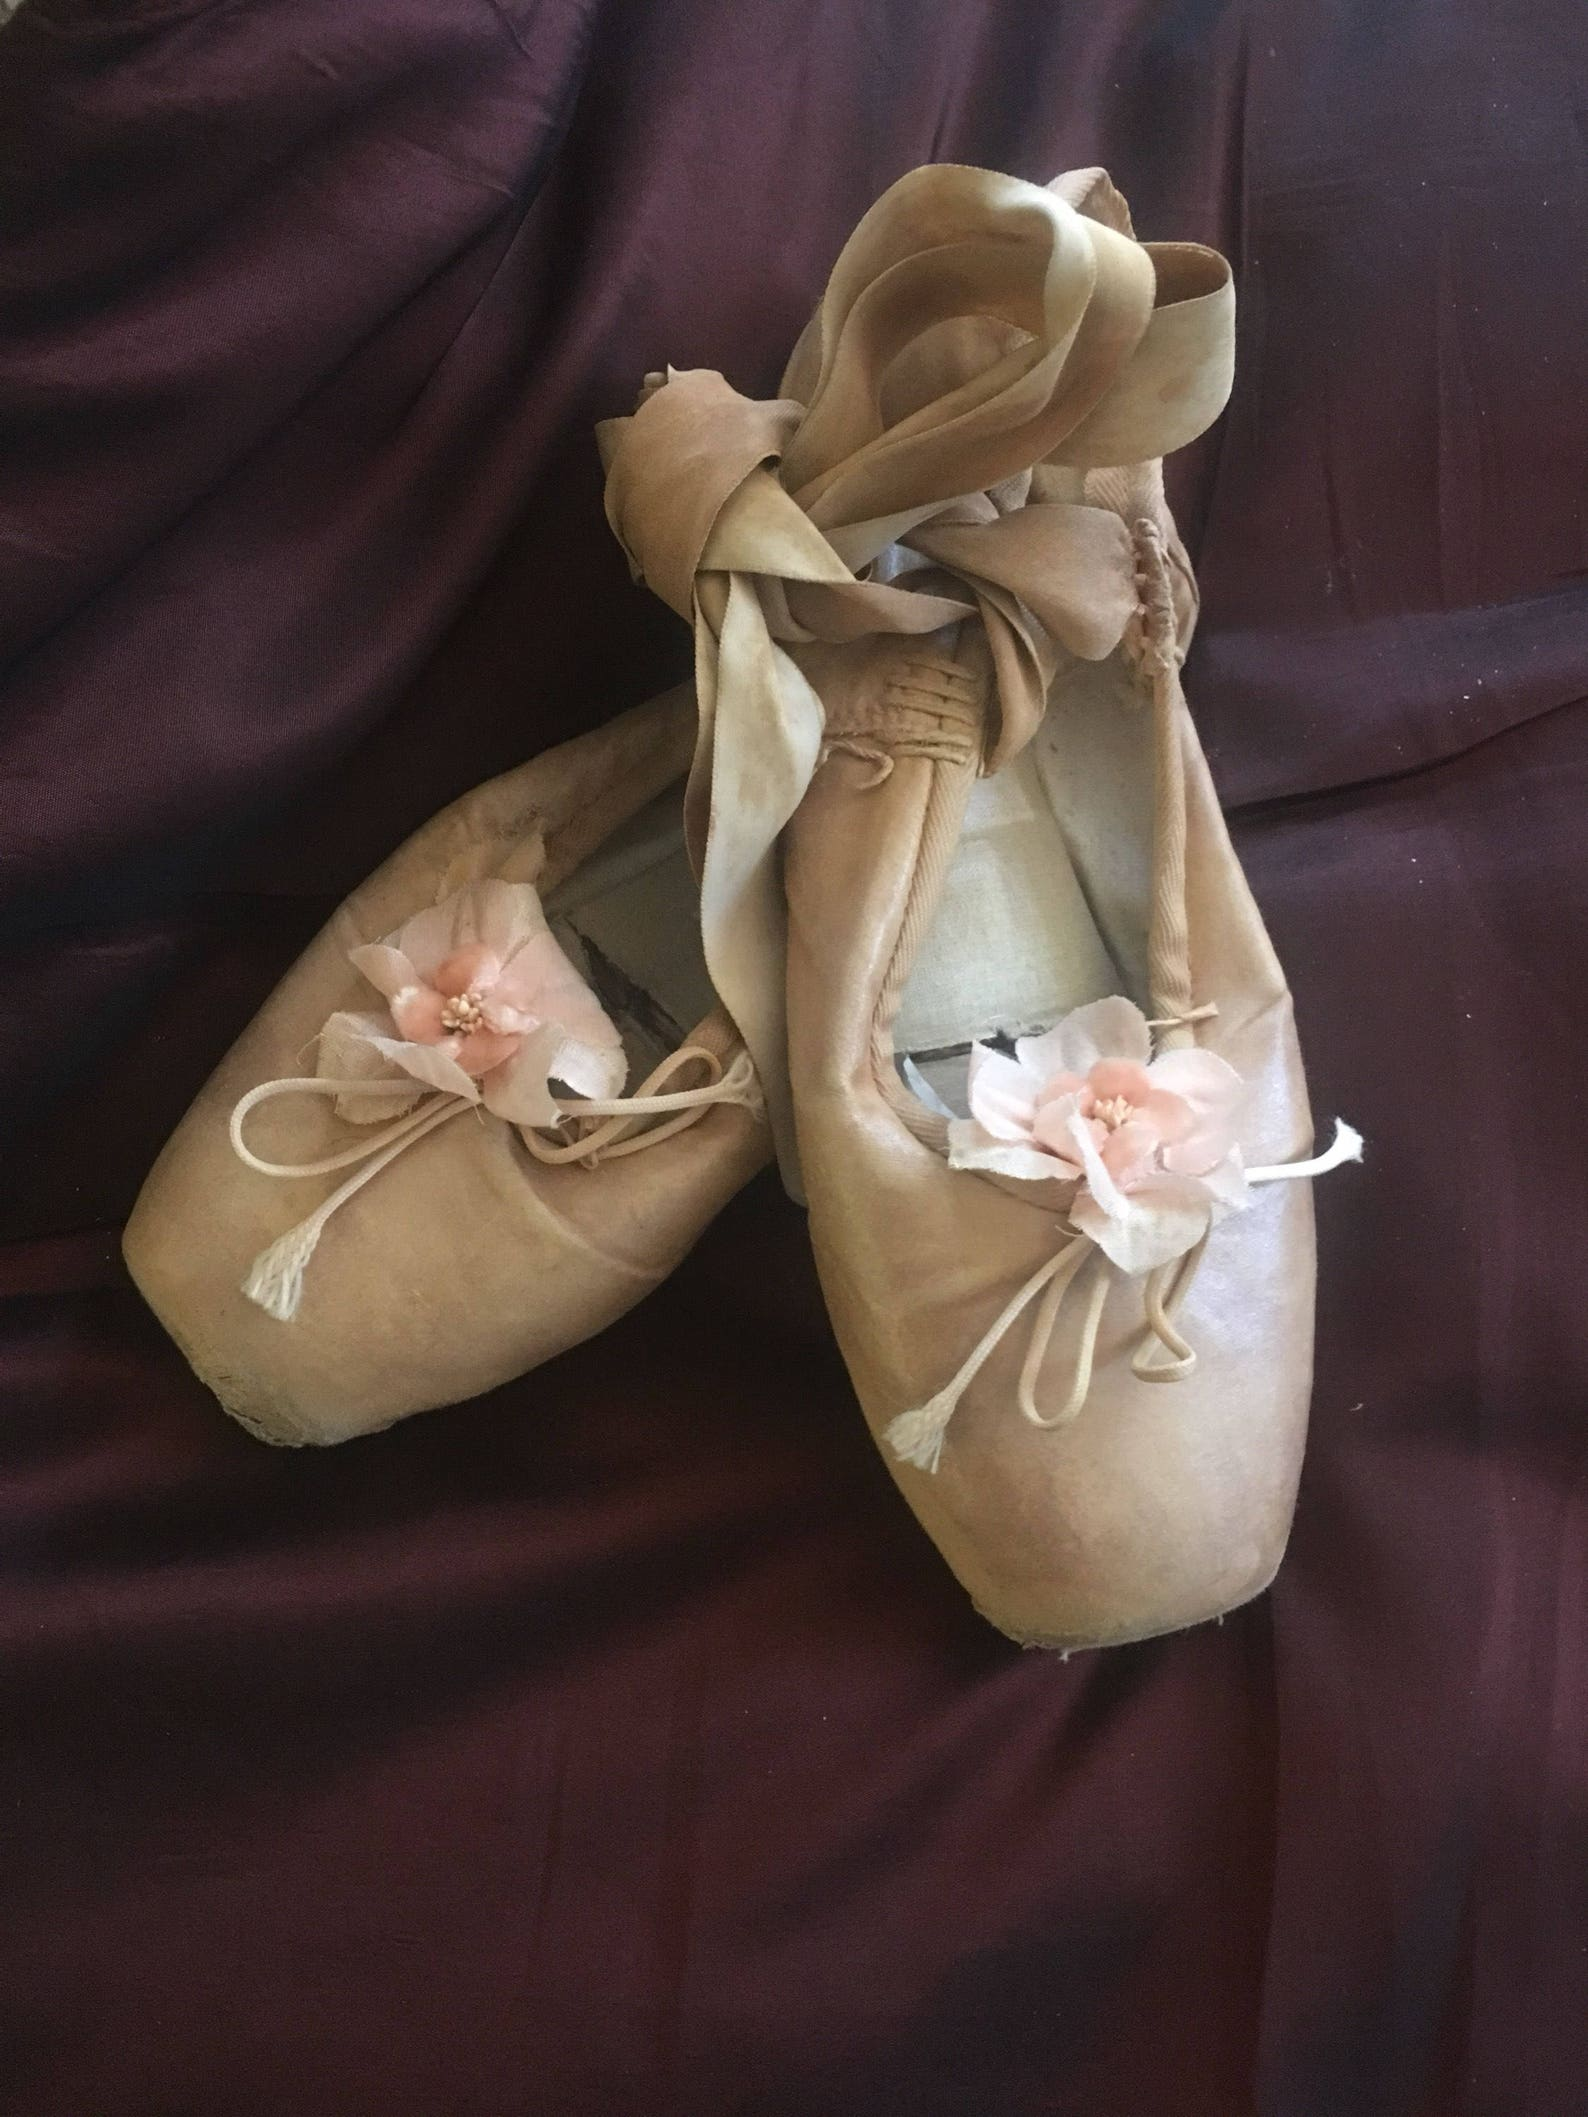 ballet shoes from france, england decorated with old french -corsage- flowers, around size 5 white sold